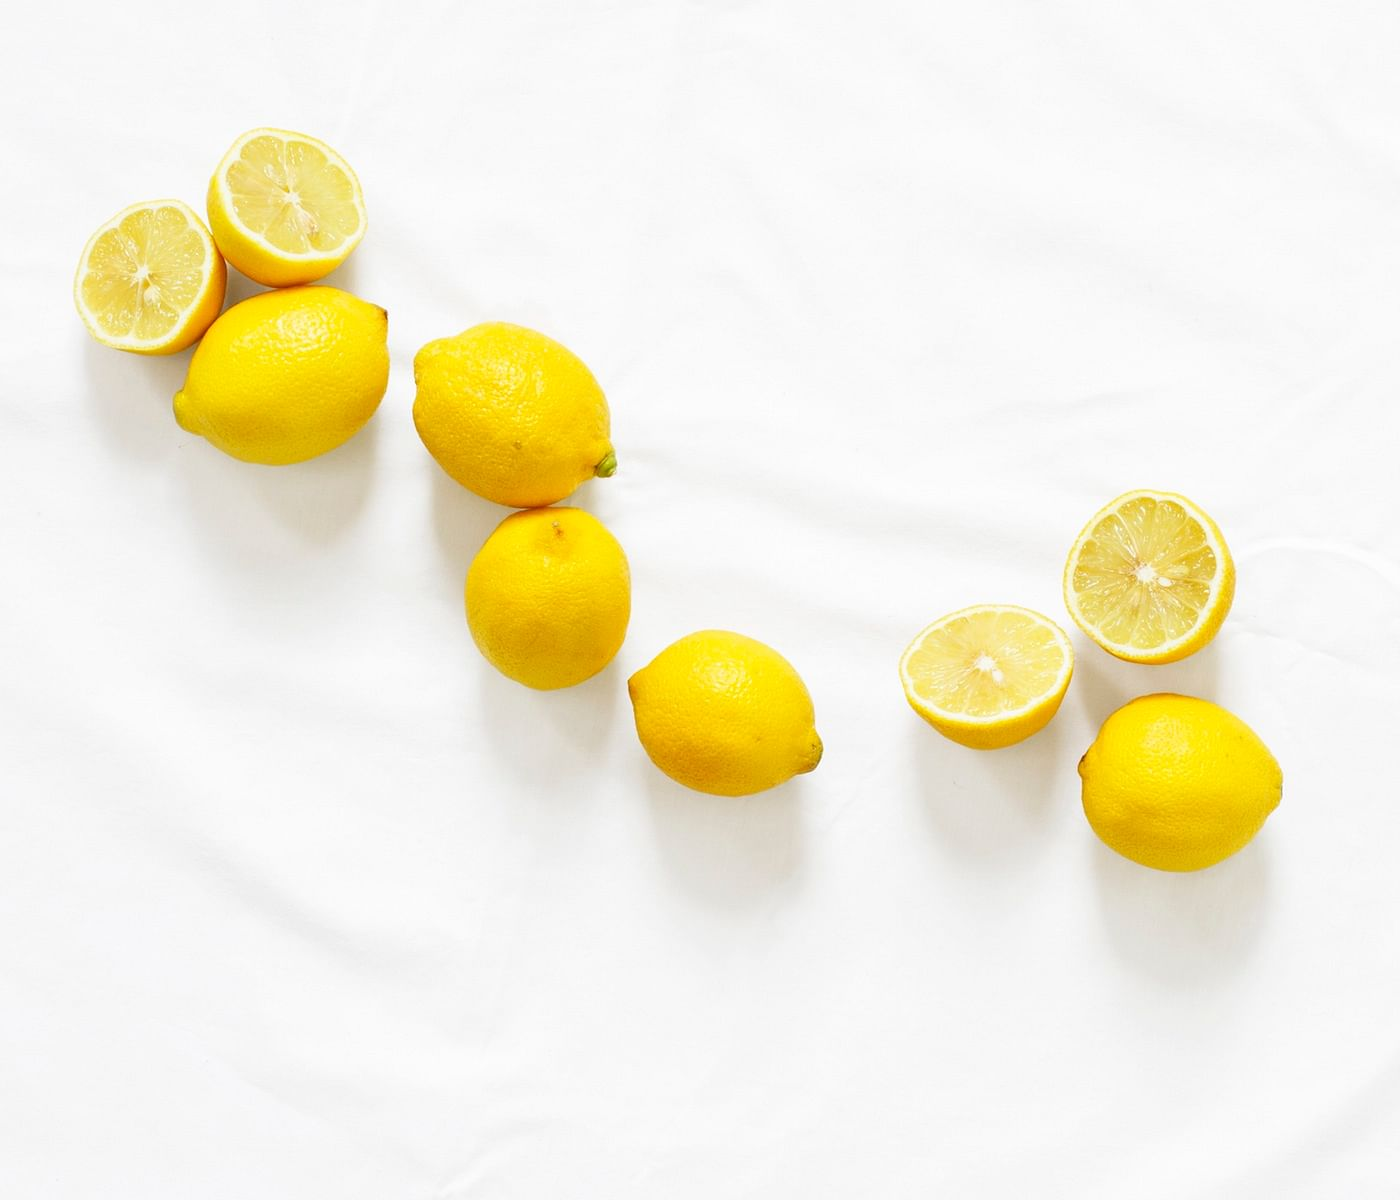 Lemon Kitchen Decor At Target: Cleaning Tips: A Lemon Can Do So Much!